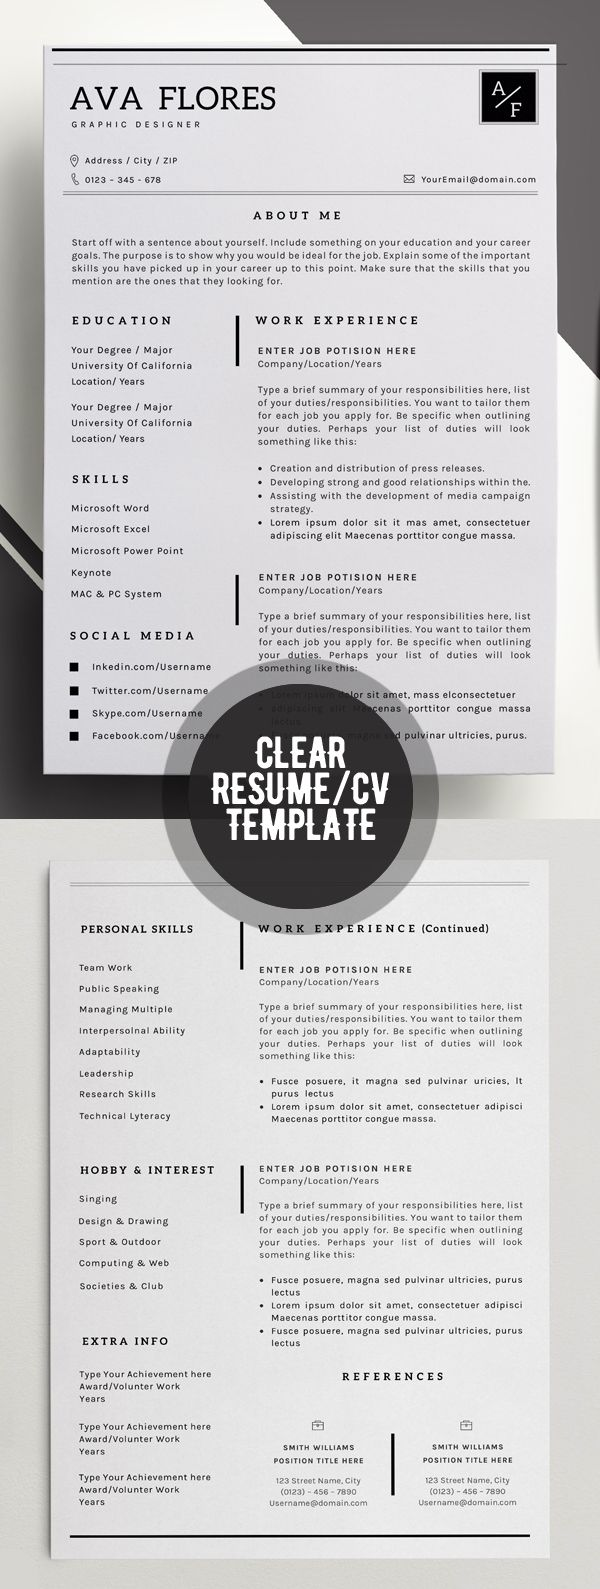 clear professional resume personal profile contact info social clear professional resume personal profile contact info social media accounts skills expertise experience achievements